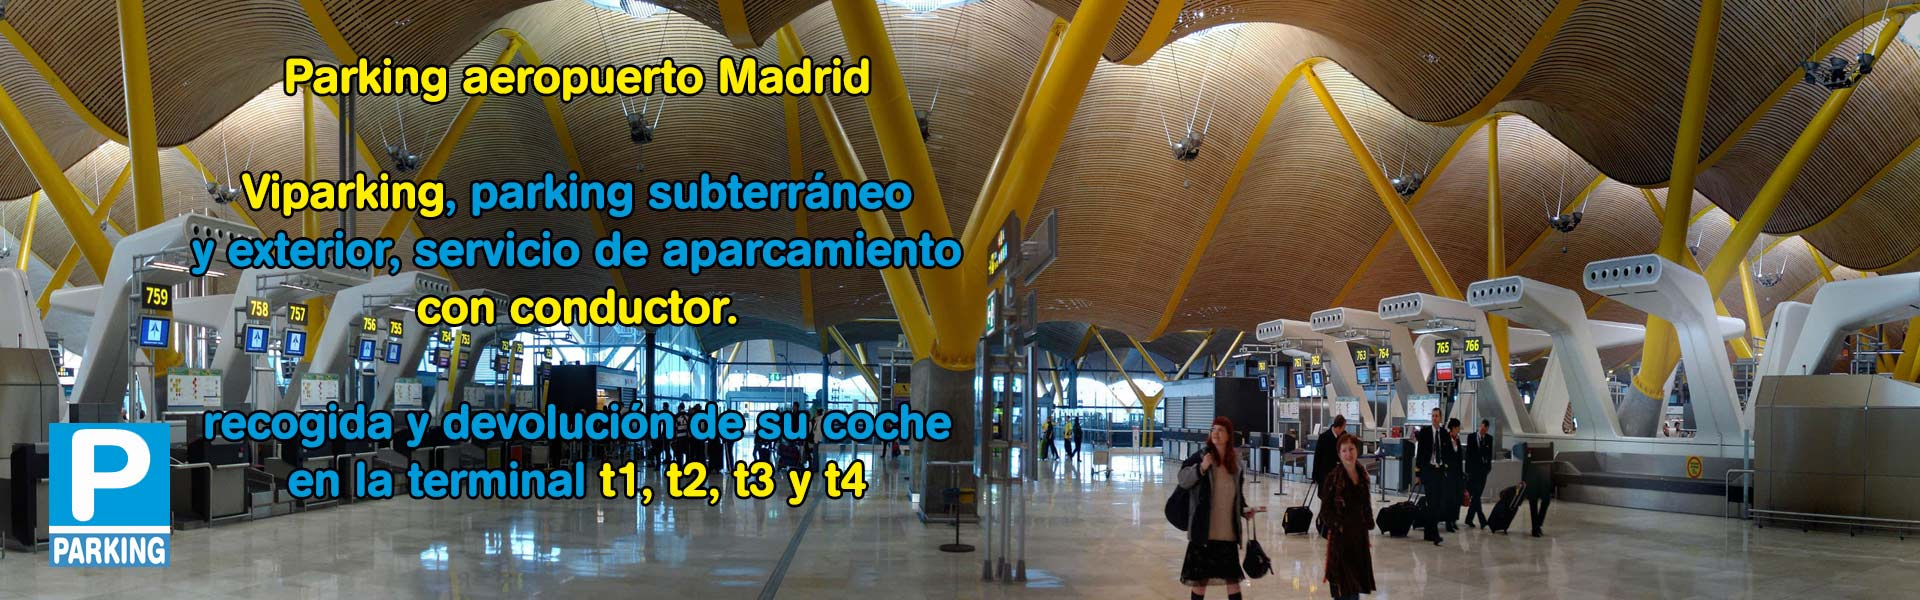 parking-aeropuerto-madrid